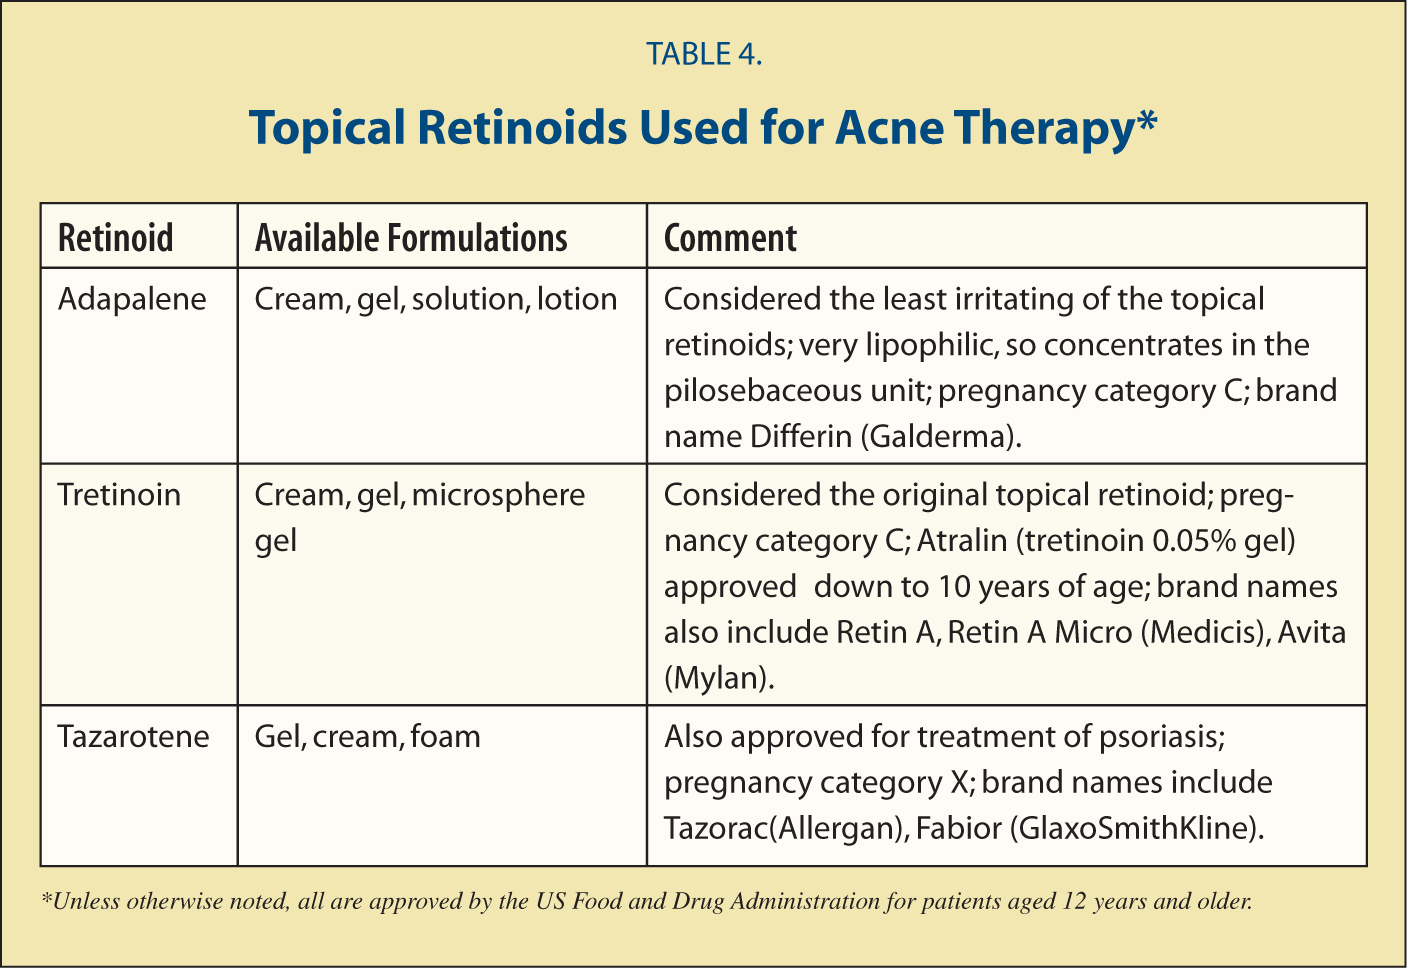 Topical Retinoids Used for Acne Therapy*